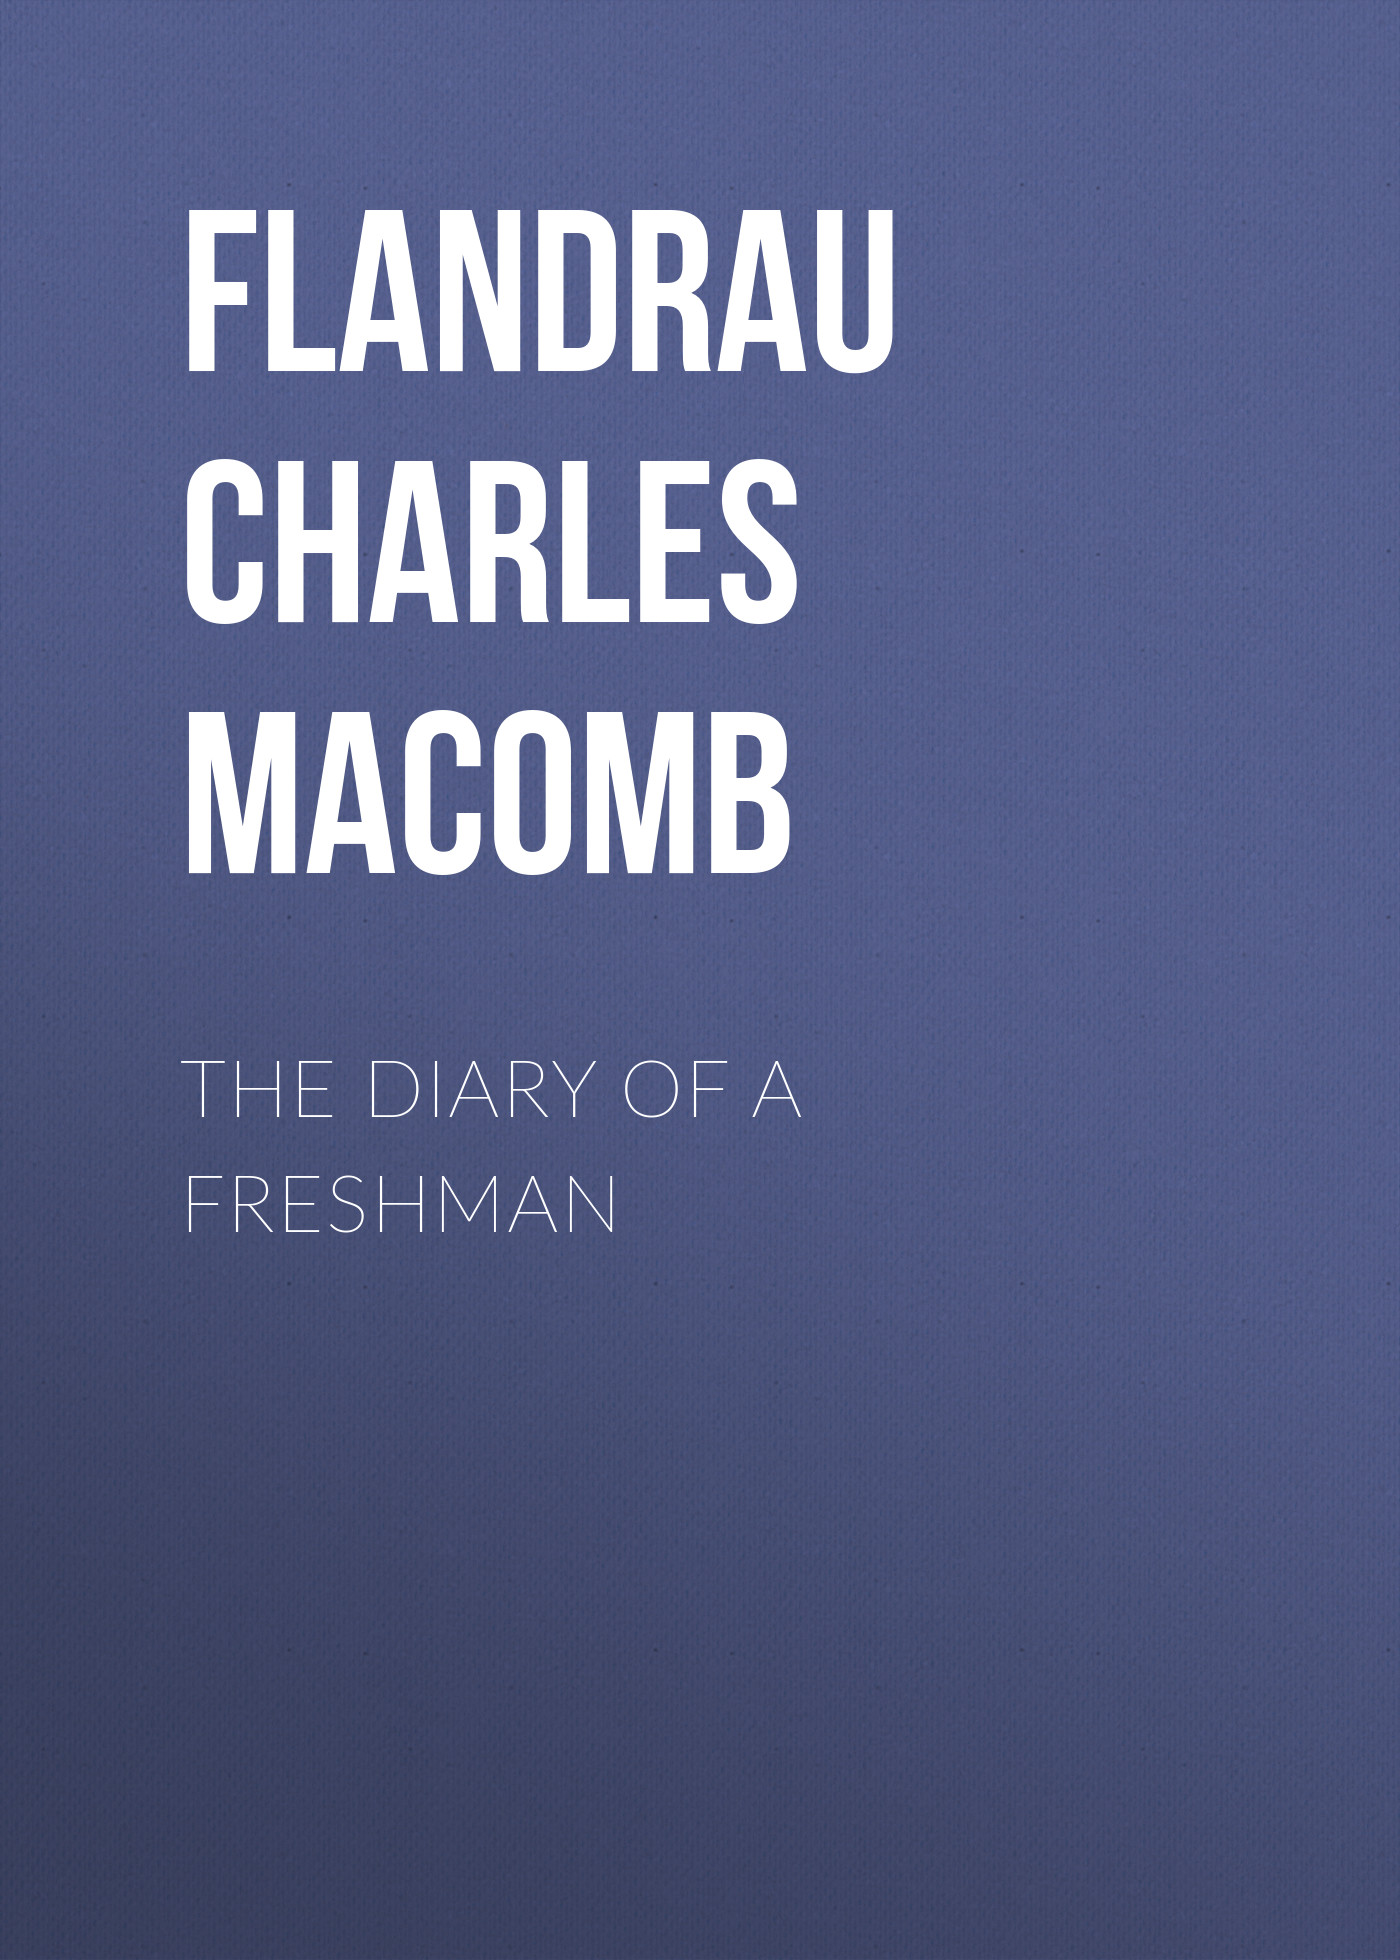 Flandrau Charles Macomb The Diary of a Freshman flandrau charles macomb the diary of a freshman